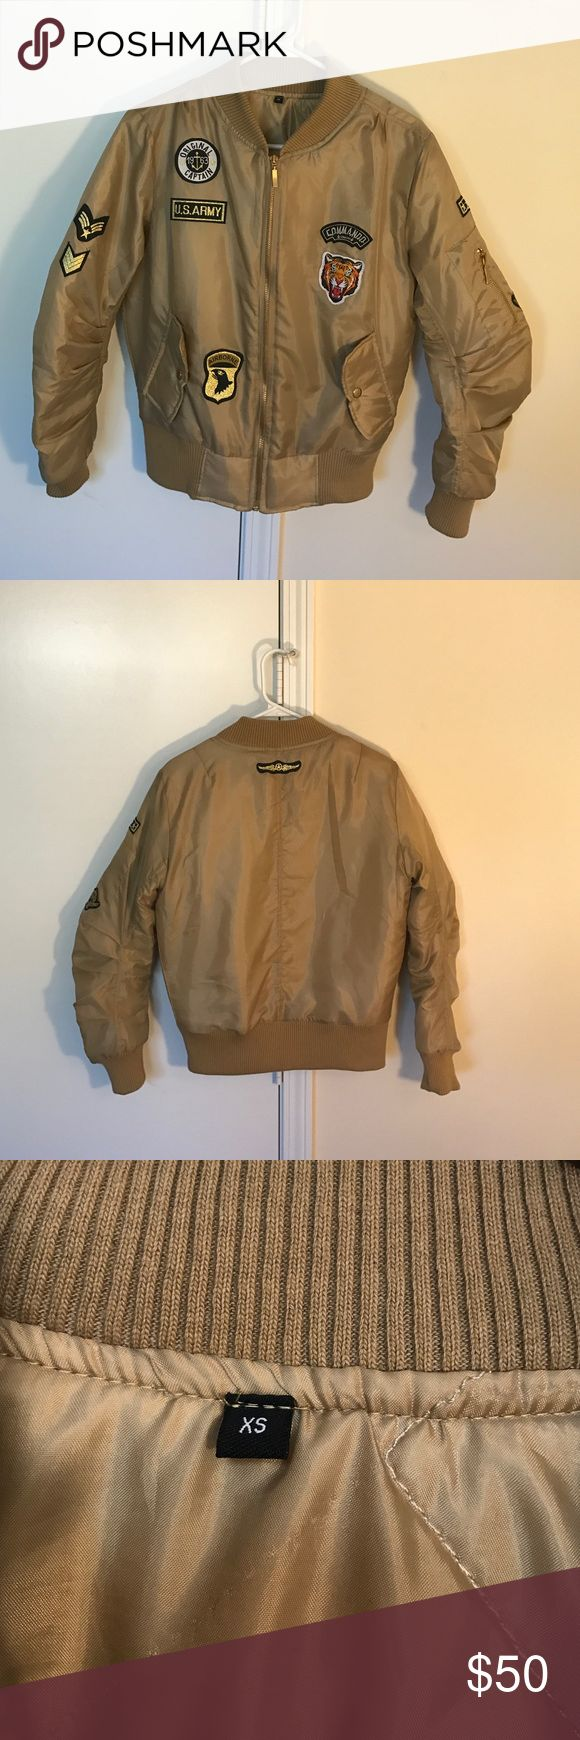 Tan/Brown bomber with patches XS but fits like a small. never worn, 100% polyester. Bought at Rasheeda's boutique store located in Phipps Plaza, in Atlanta, GA. Jackets & Coats Utility Jackets